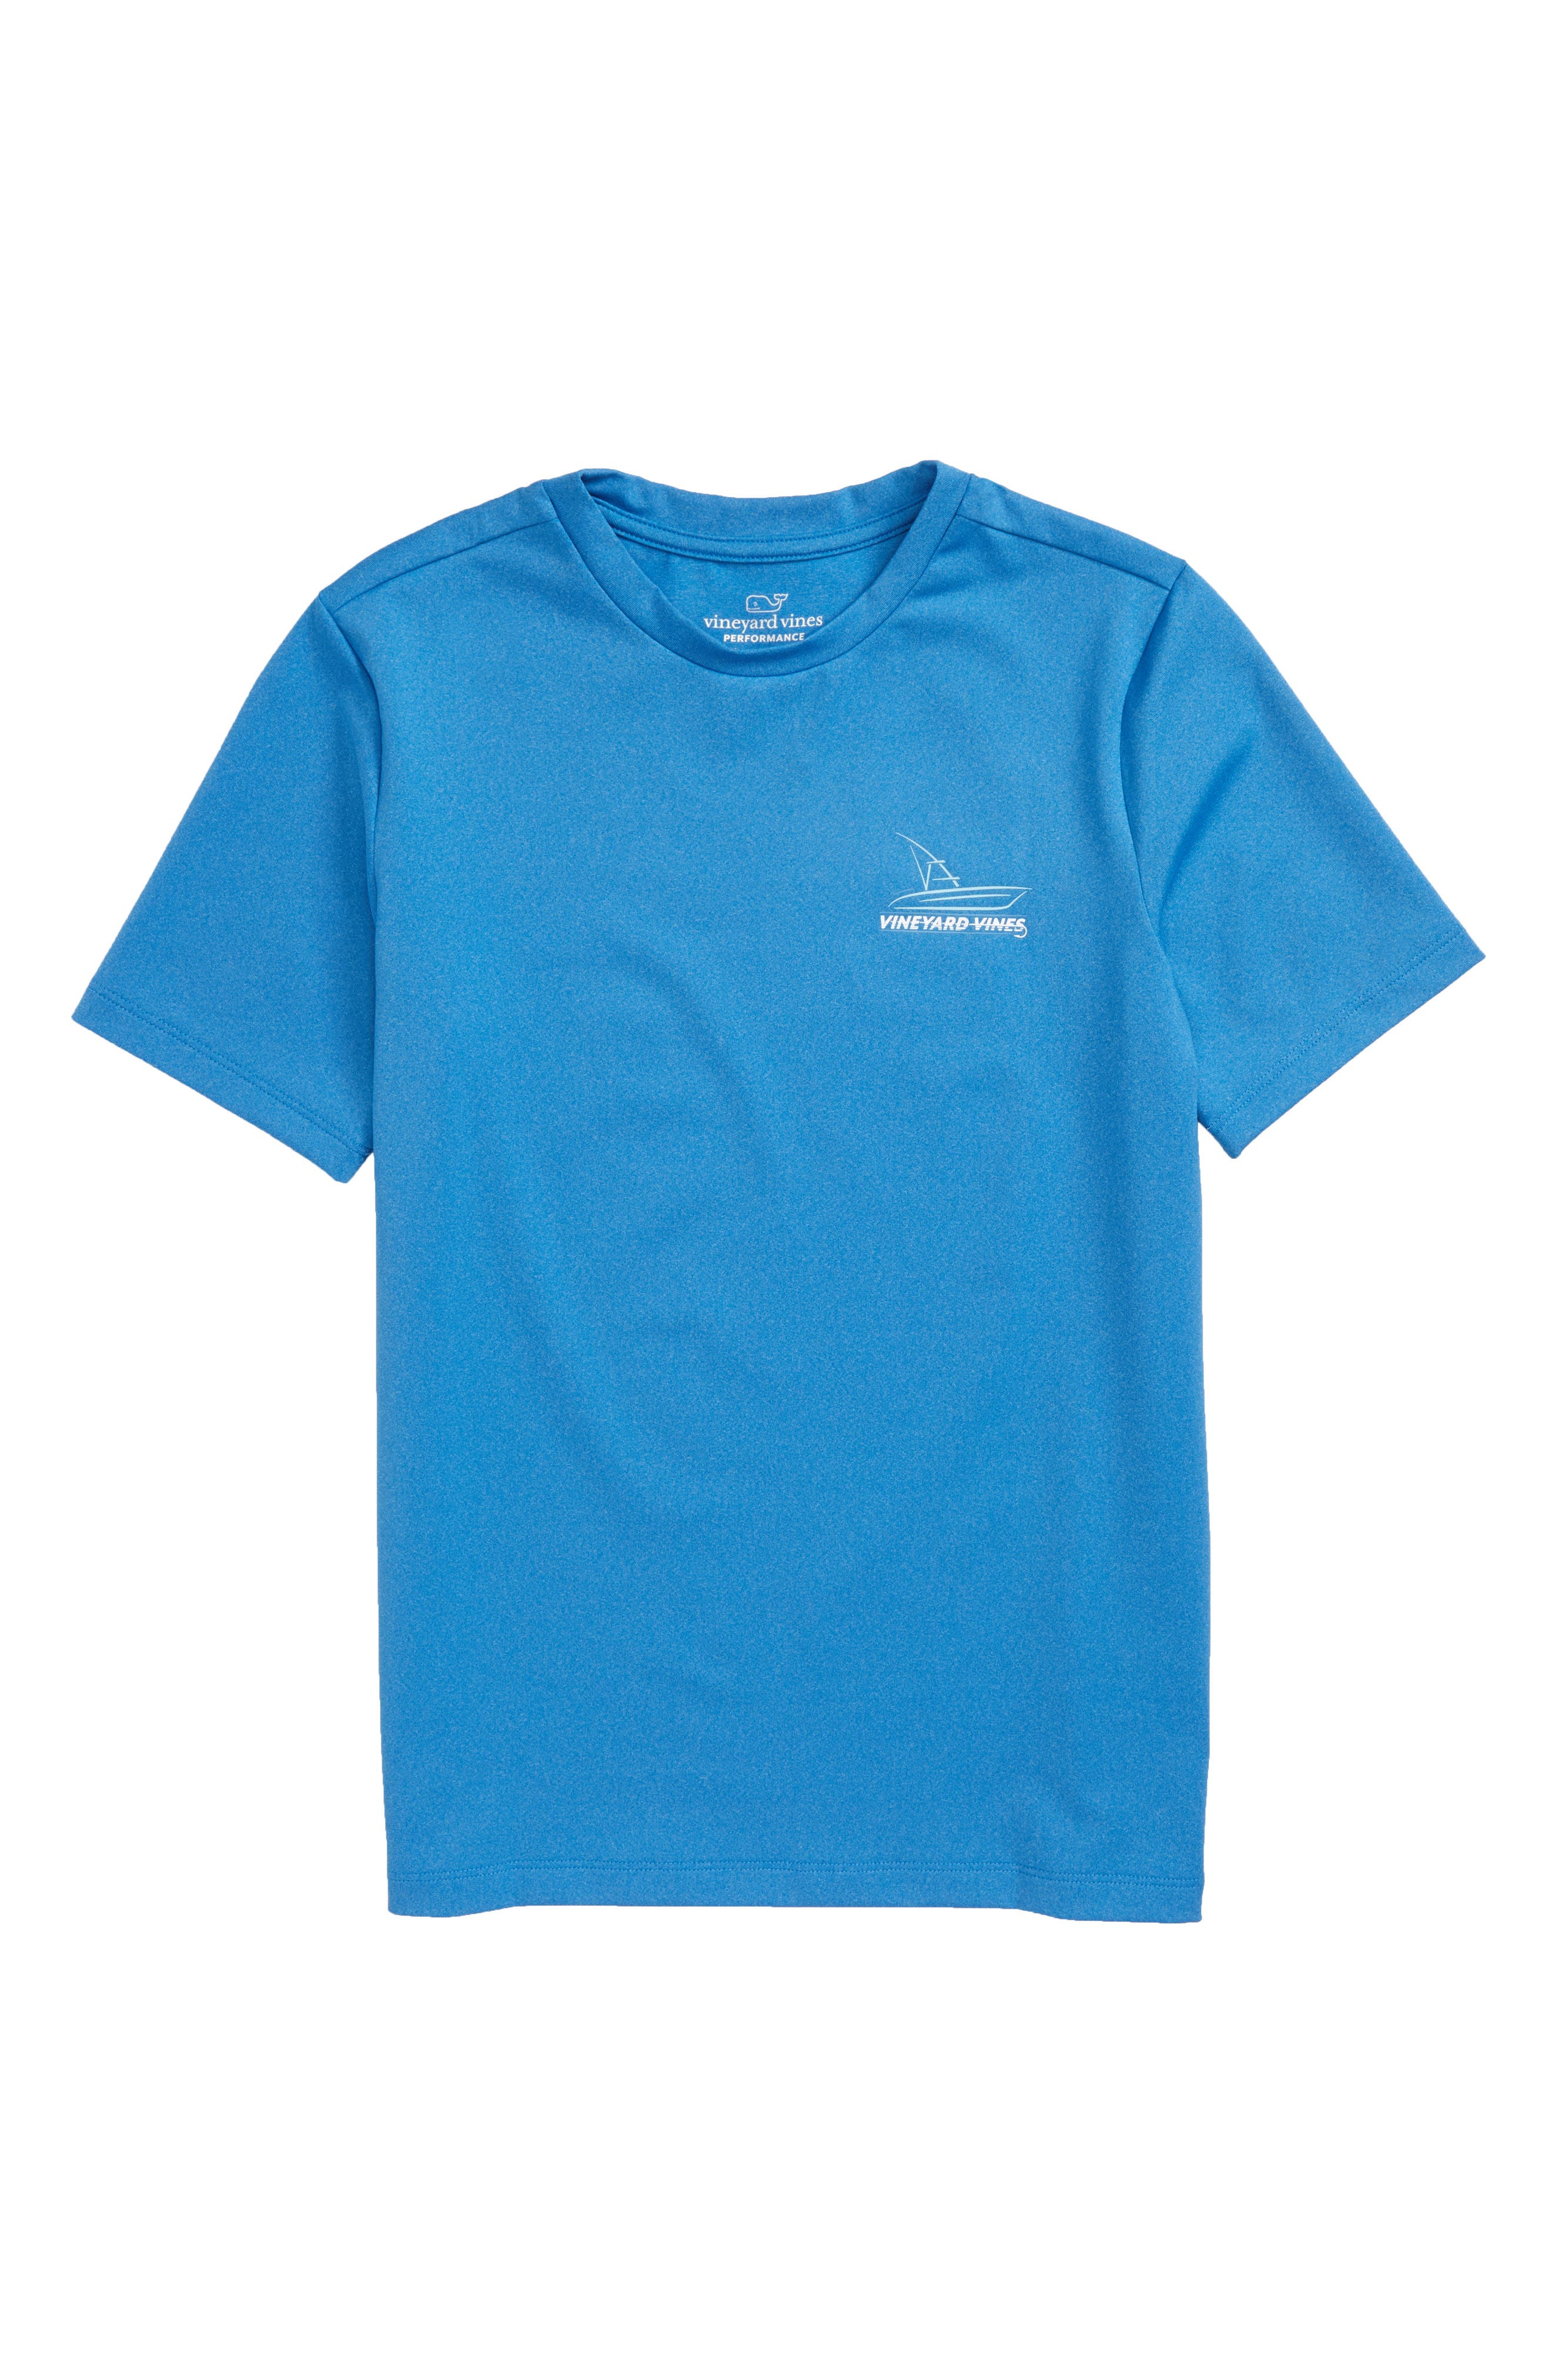 Sportfisher T-Shirt,                         Main,                         color, 400